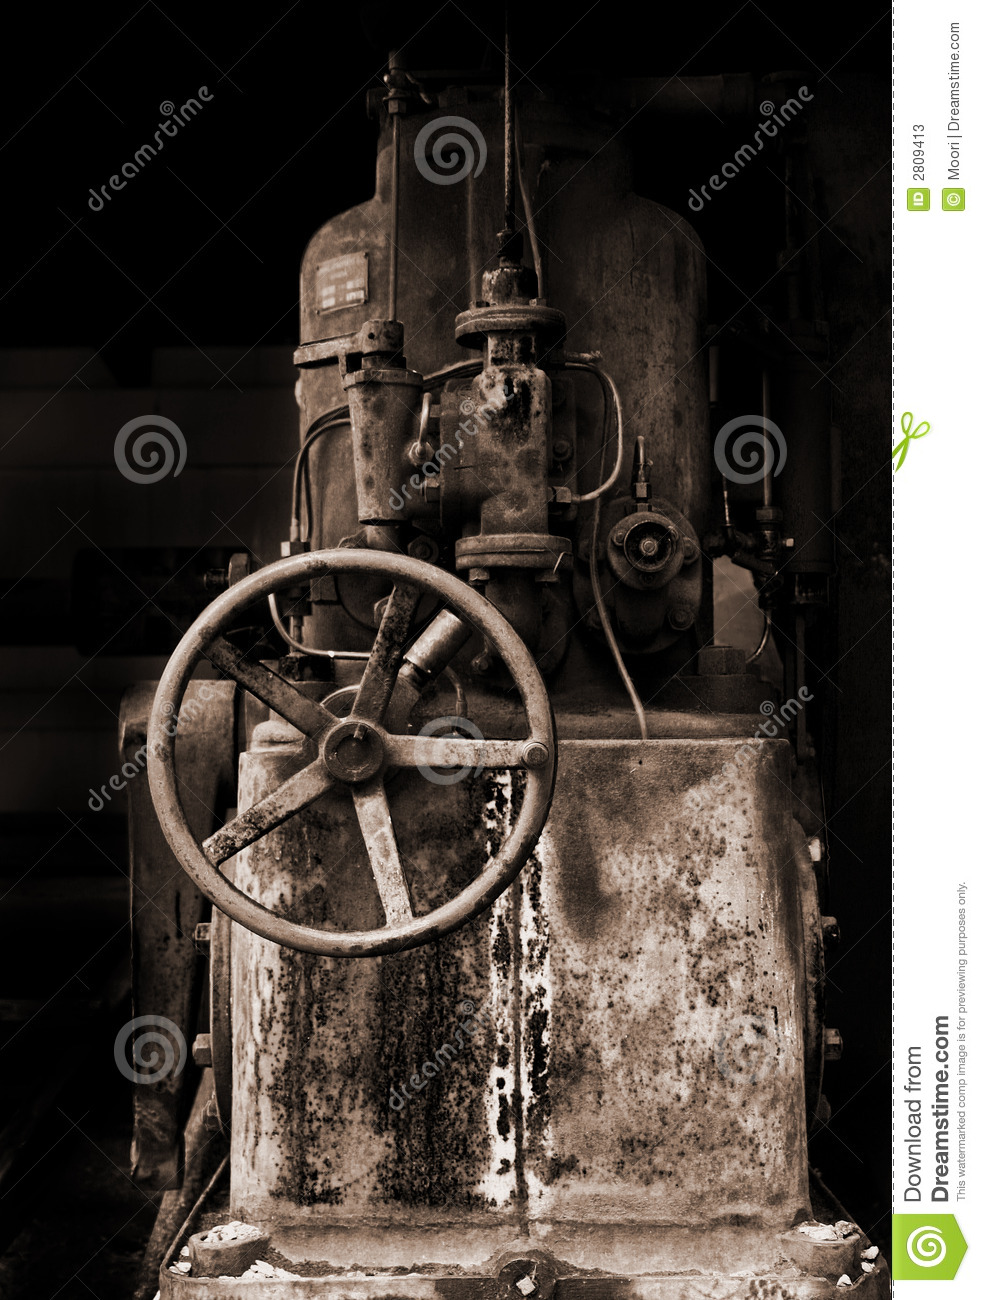 Old Machinery Stock Photos - Image: 2809413